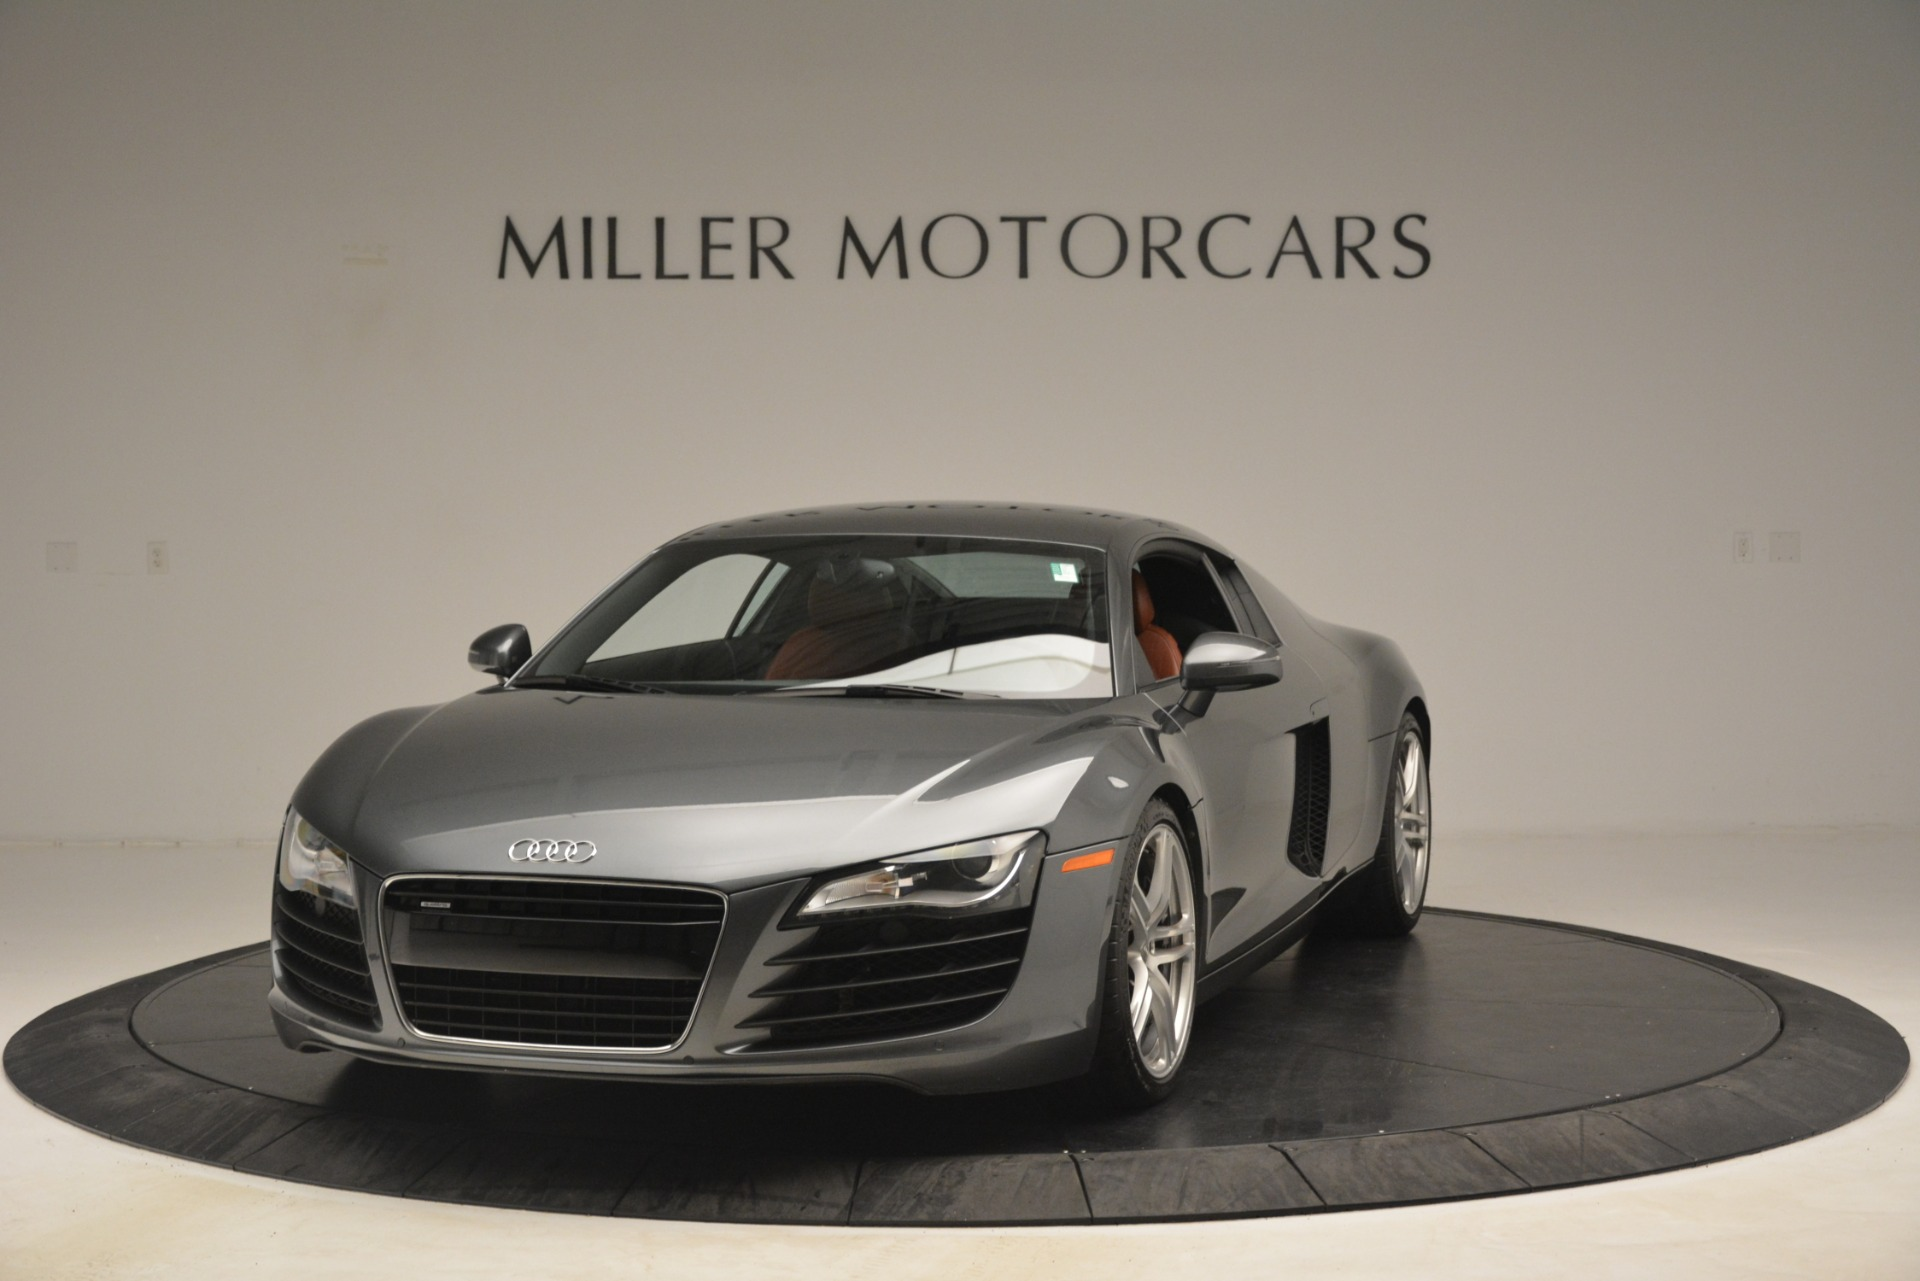 Used 2009 Audi R8 quattro for sale Sold at Bentley Greenwich in Greenwich CT 06830 1